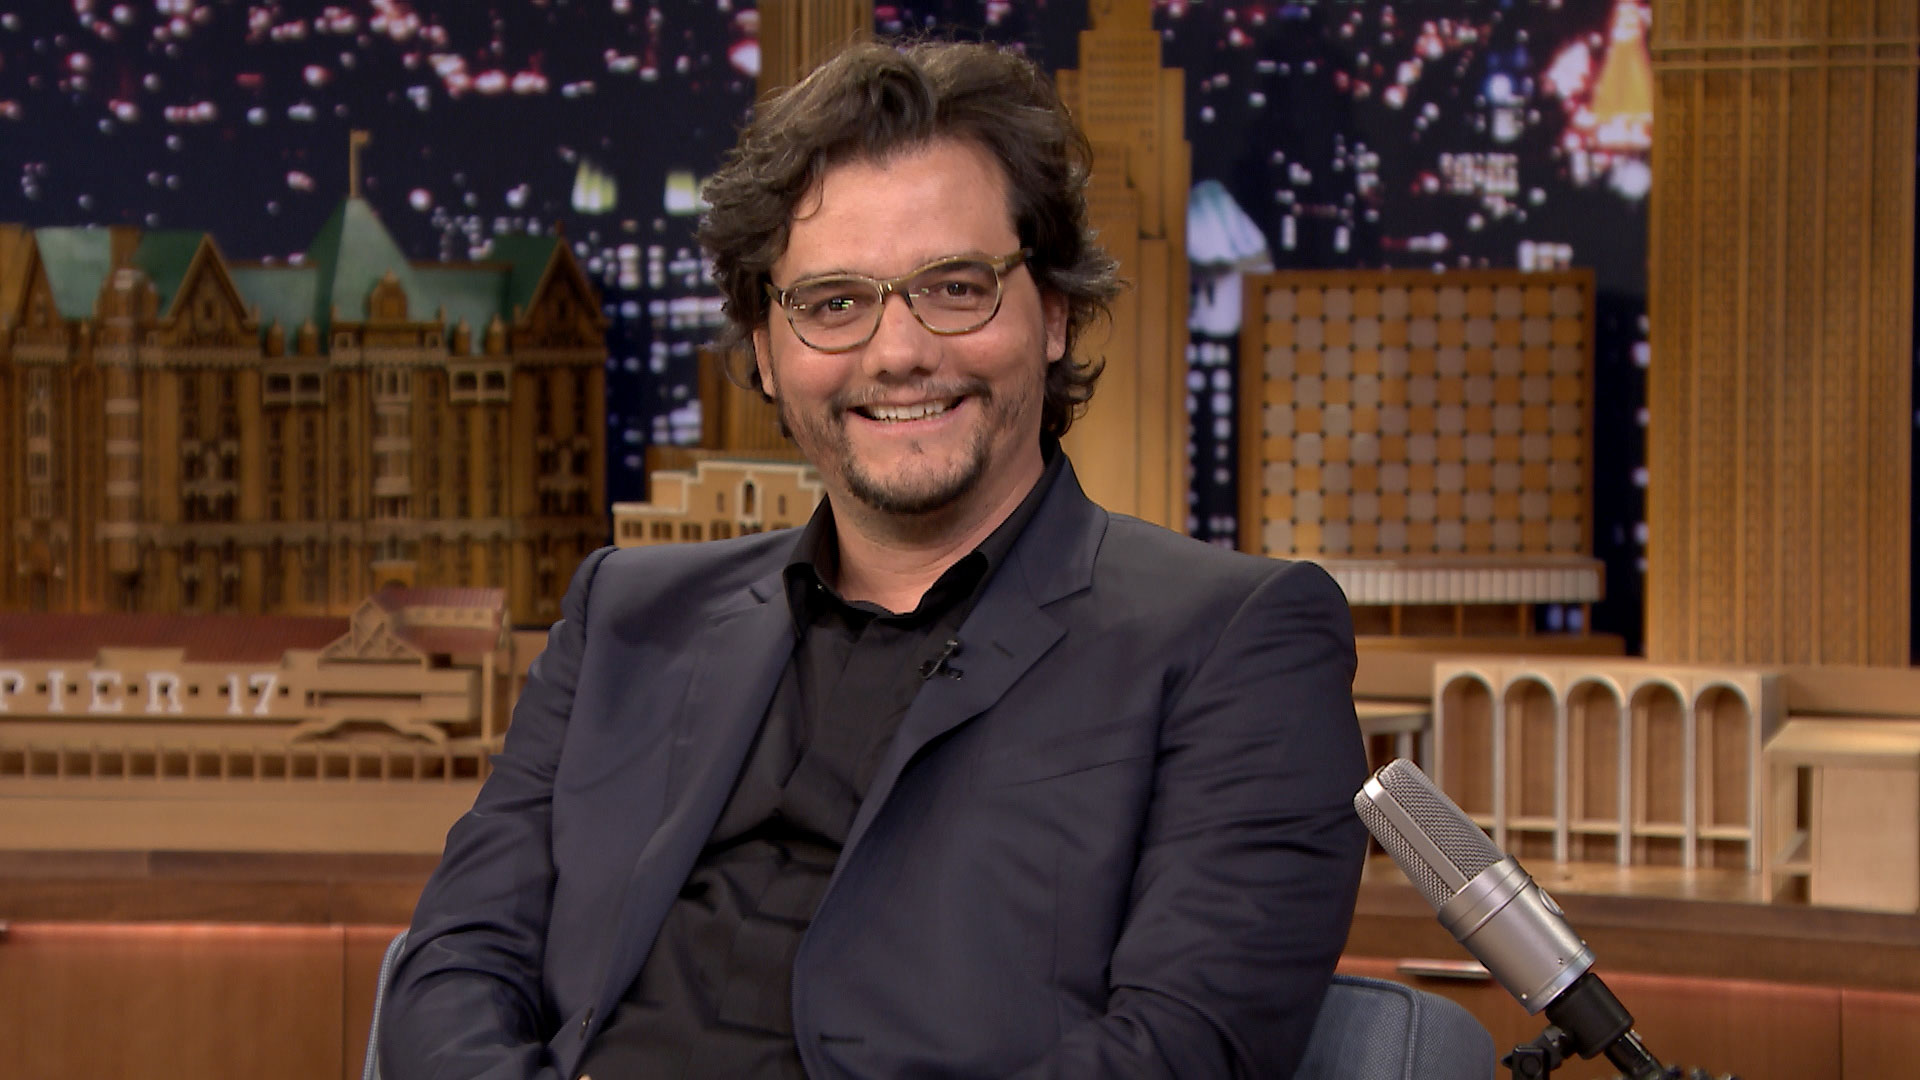 wagner moura wiki